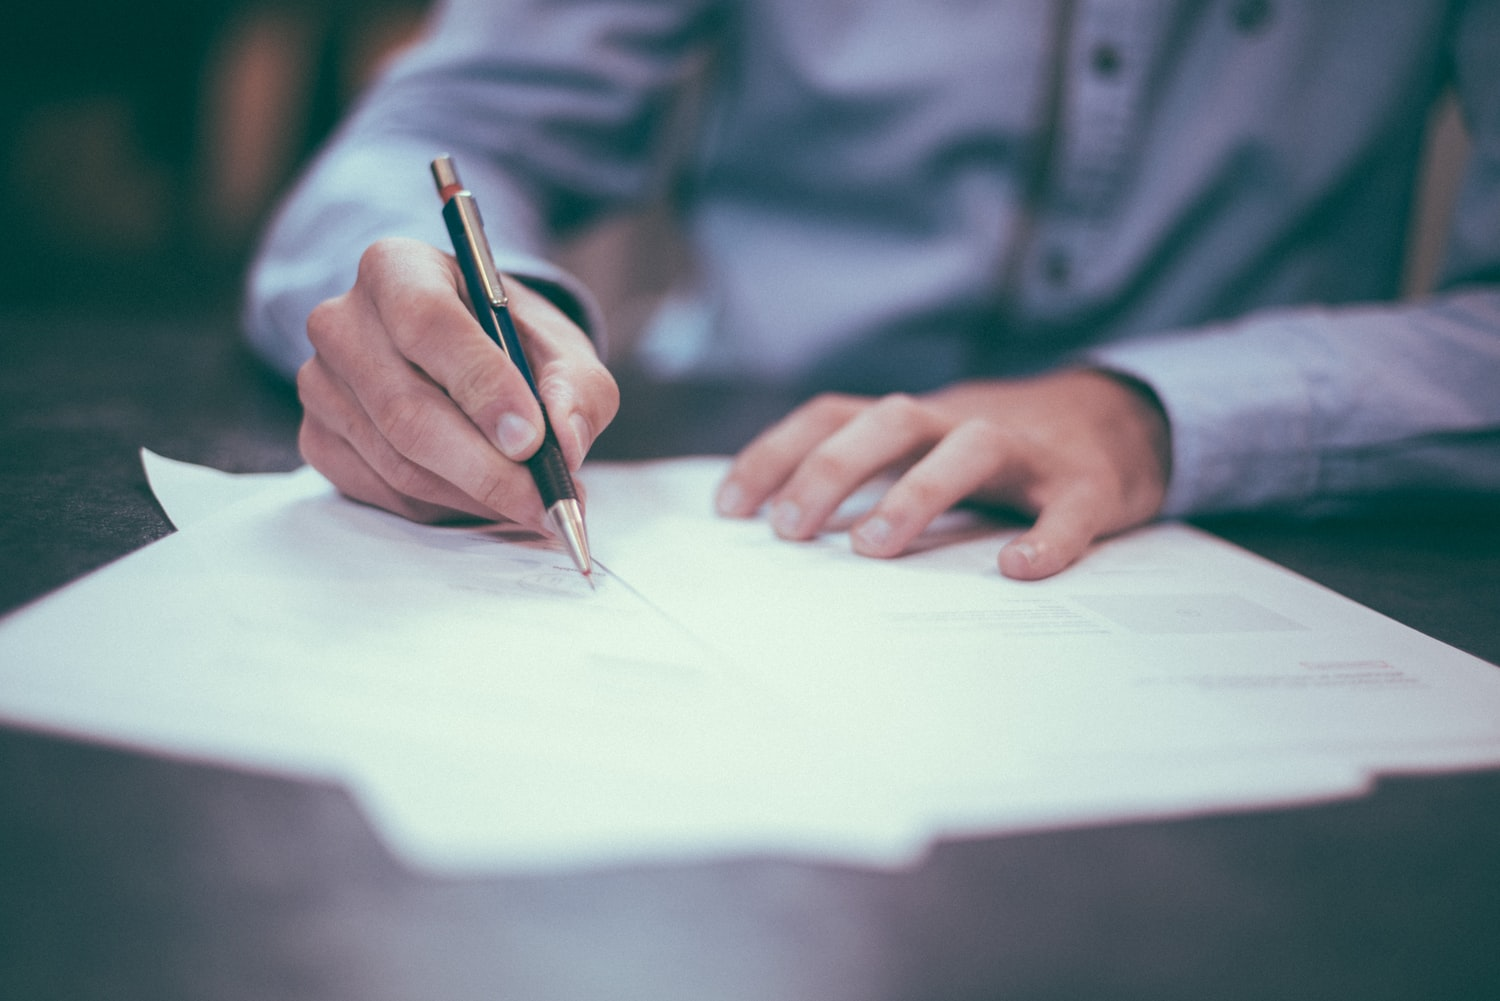 Person filling out form at desk with pen